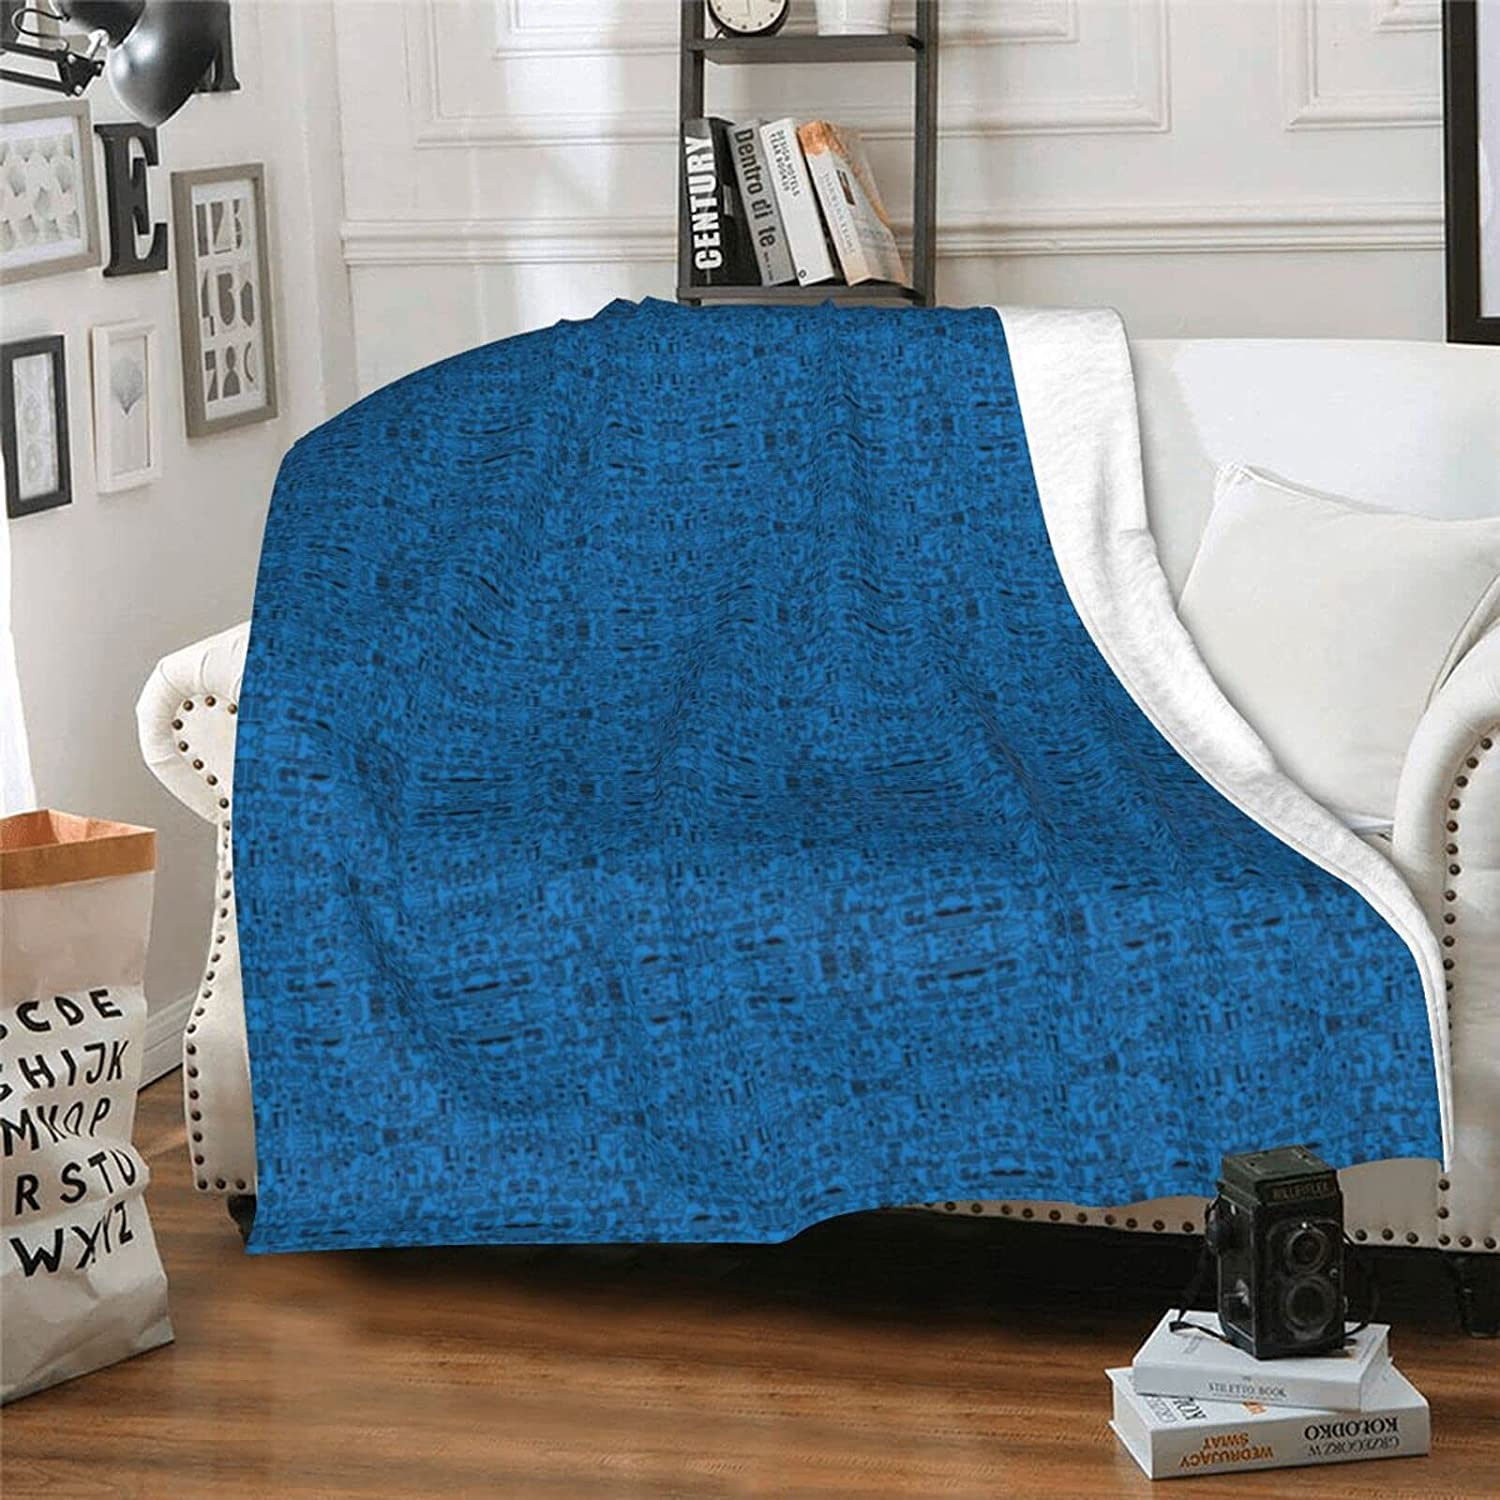 WIUEZWY Formula Pattern Printed Max San Jose Mall 64% OFF for Colorful Blanket Rug